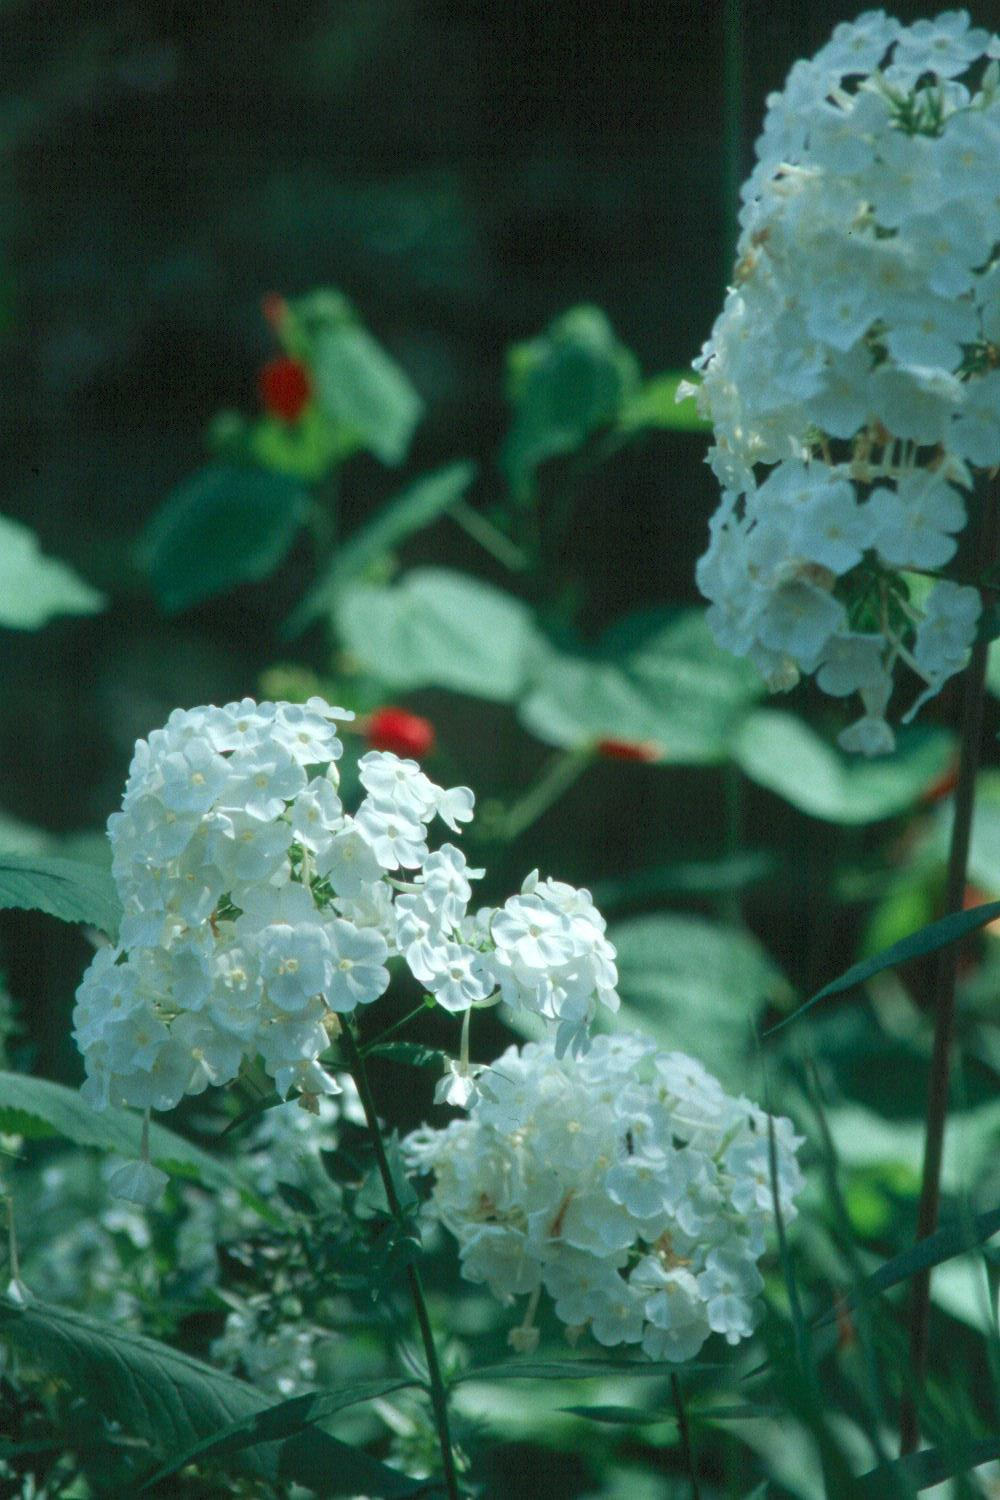 The glistening white flowers of the perennial phlox David offers fragrance as well as beauty for an extended season.